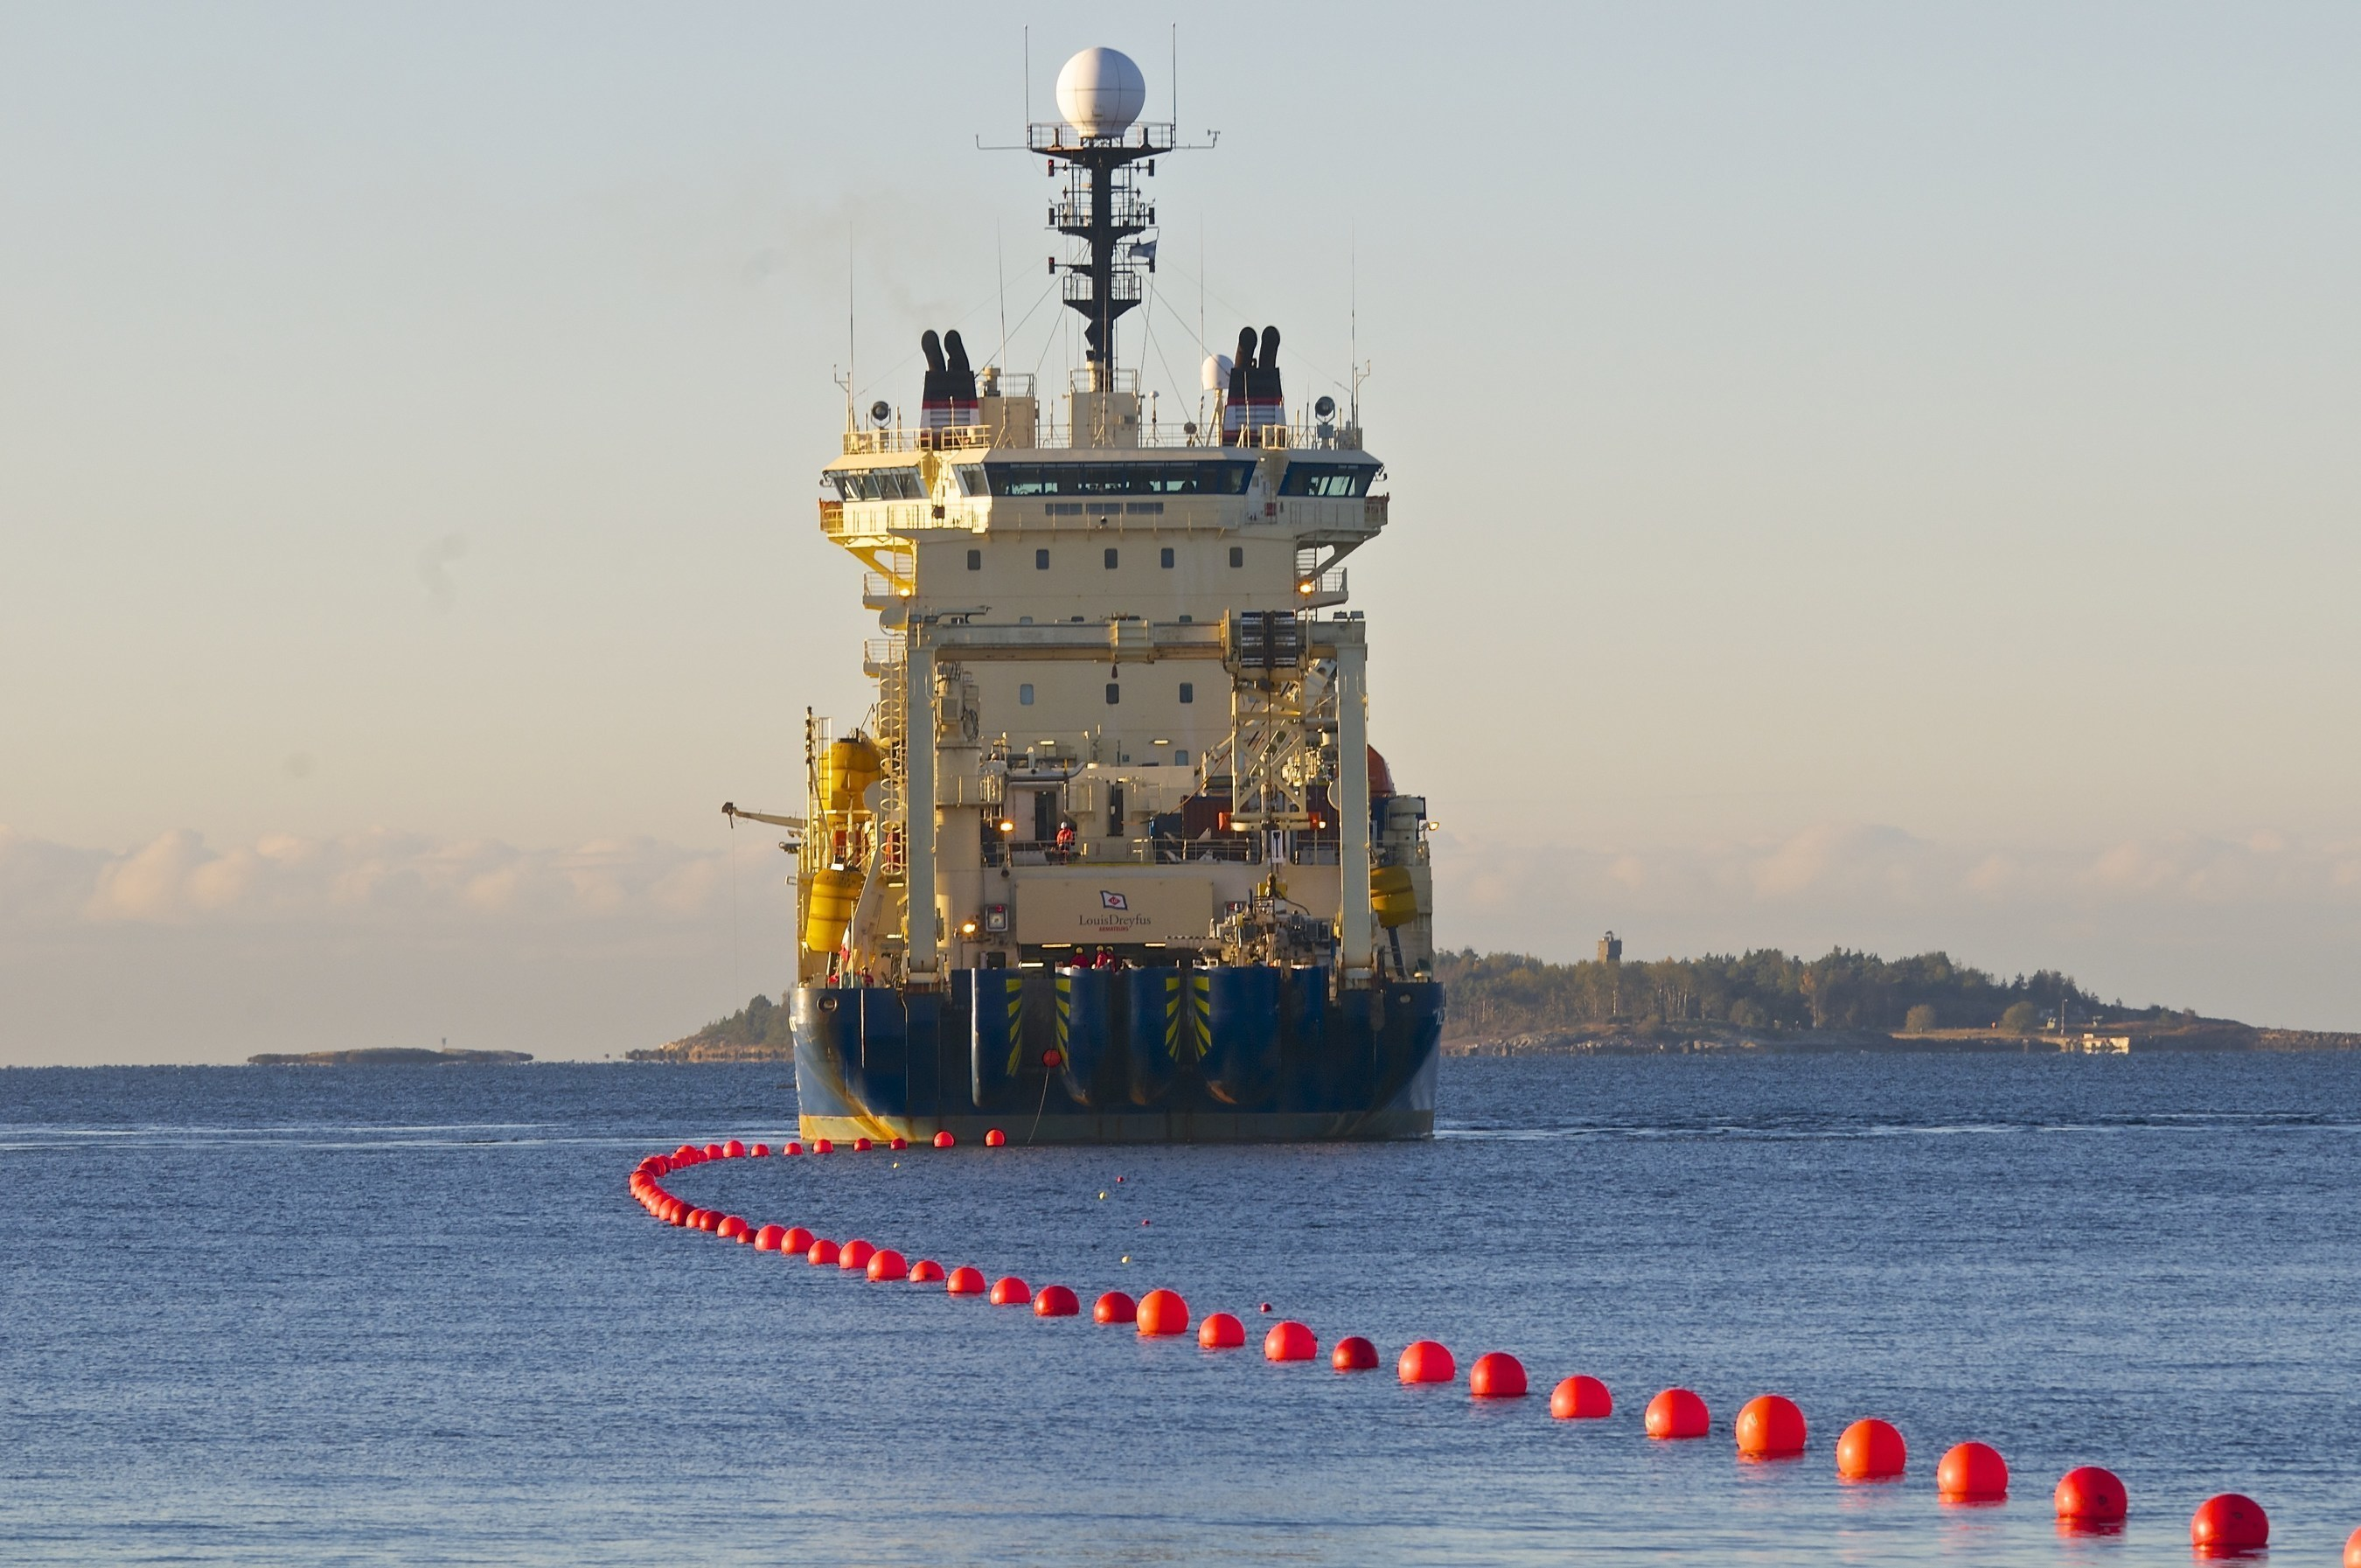 Cinia Begins Laying New Submarine Data Cable from Helsinki to Rostock; New Direct Data Connection Across Baltic Sea to Link Finland and Germany